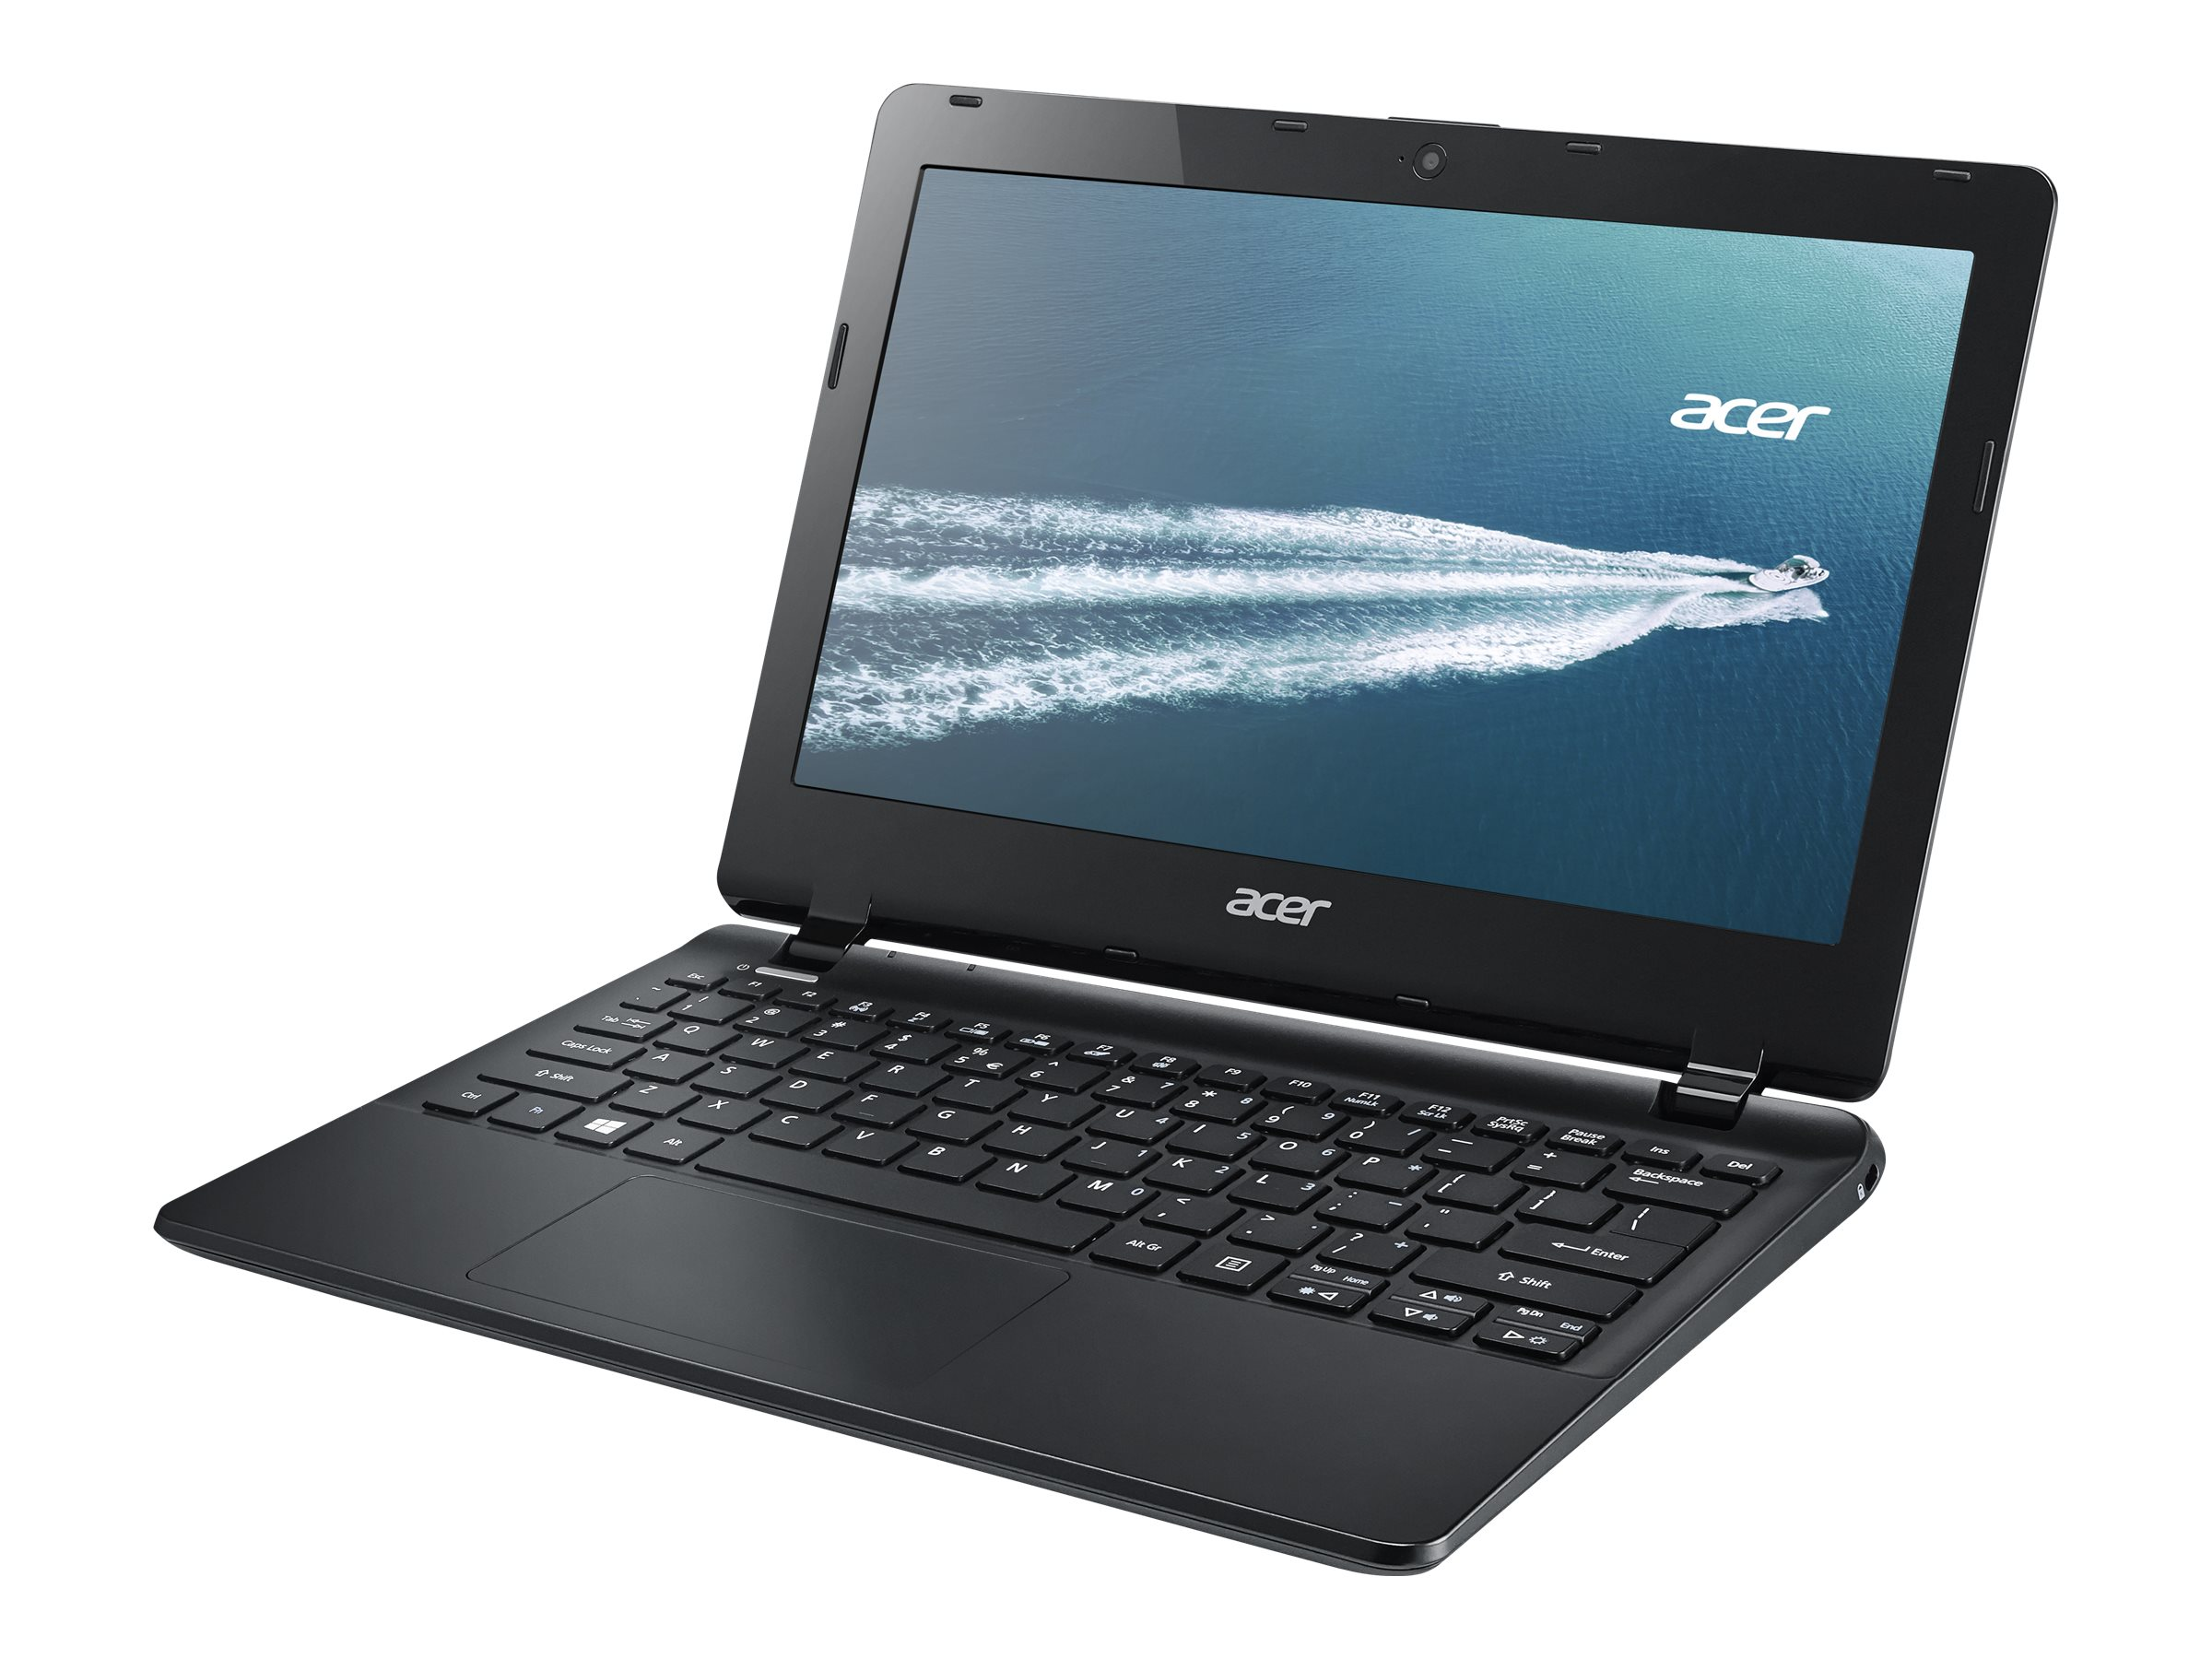 Acer TravelMate B115-MP-C6HB Celeron N2940 1.83GHz 4GB 500GB ac BT 11.6 HD MT W8.1P64